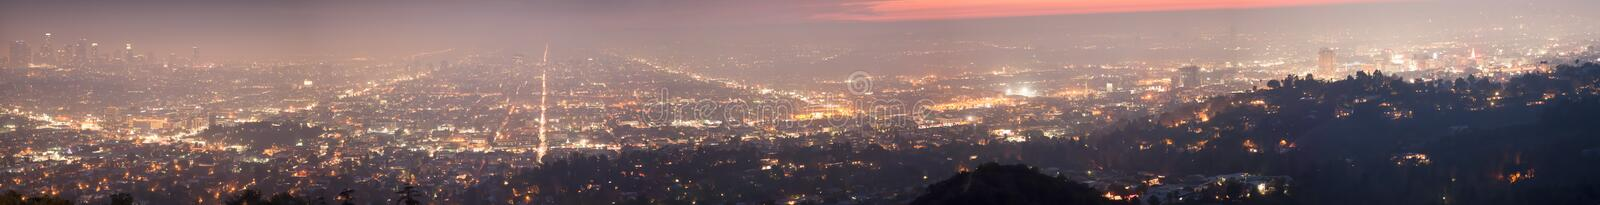 Night of Los Angeles - panorama royalty free stock photography